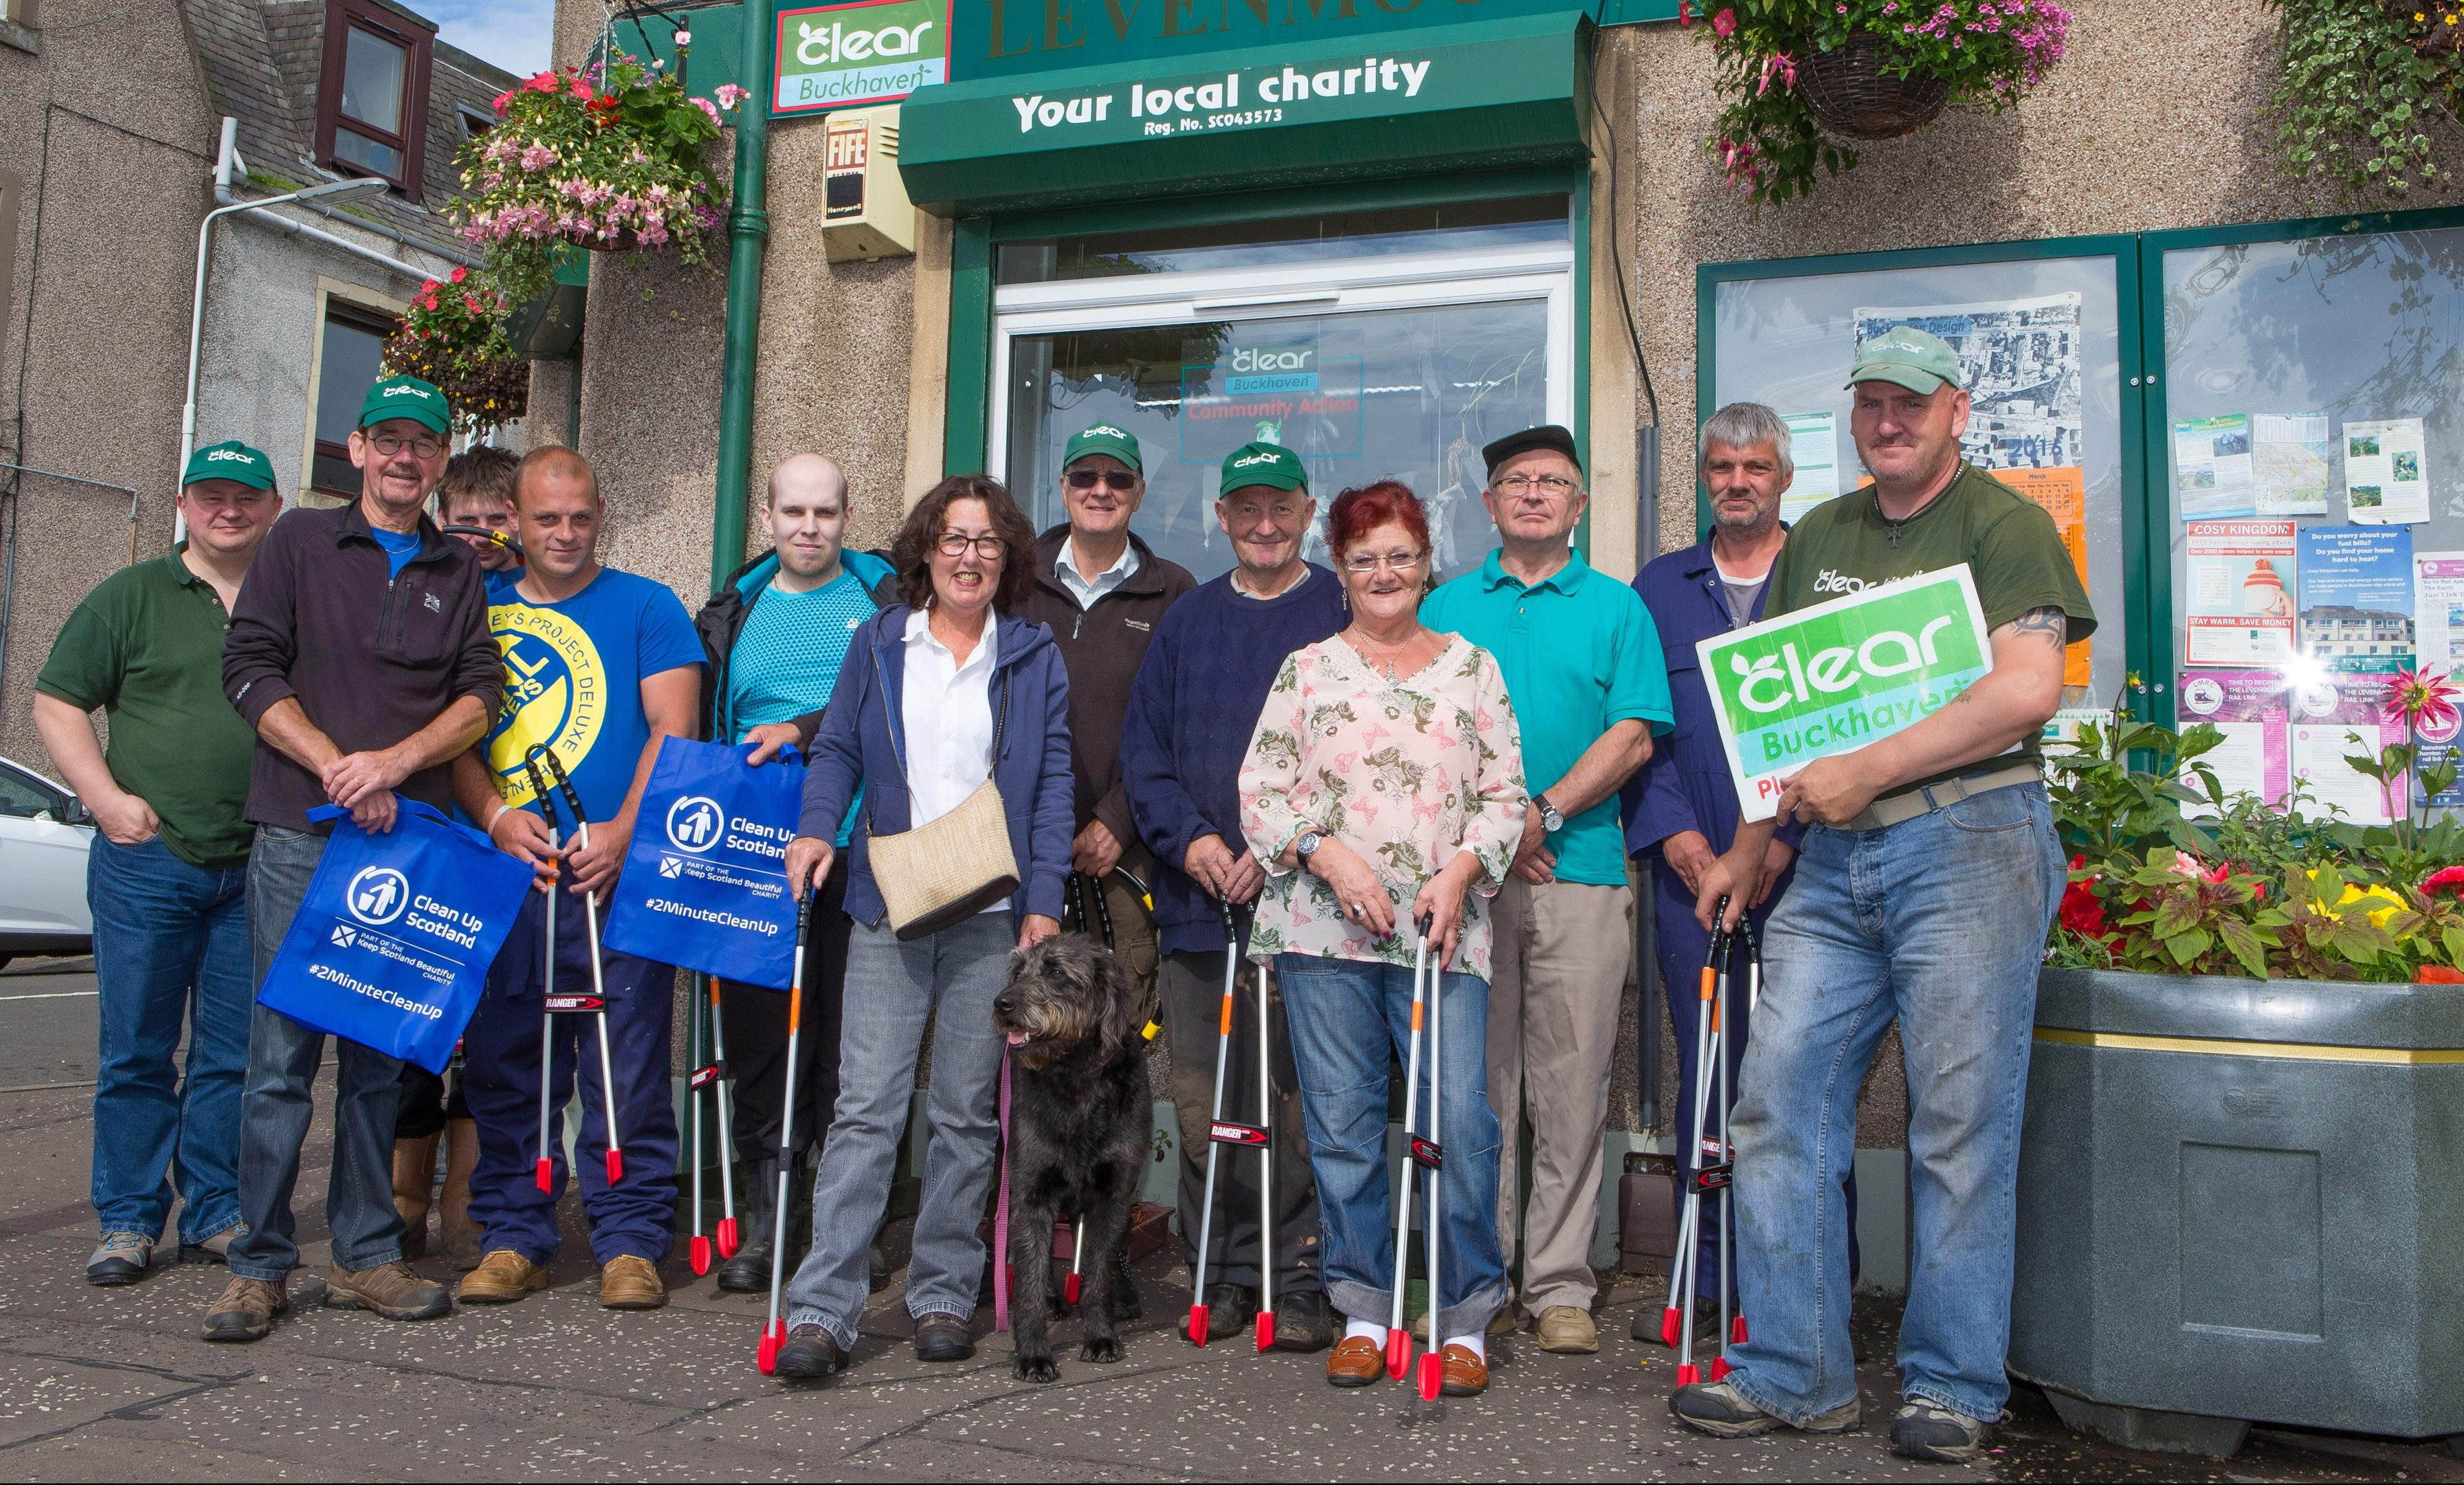 The CLEAR Buckhaven team outside the office in College Street.